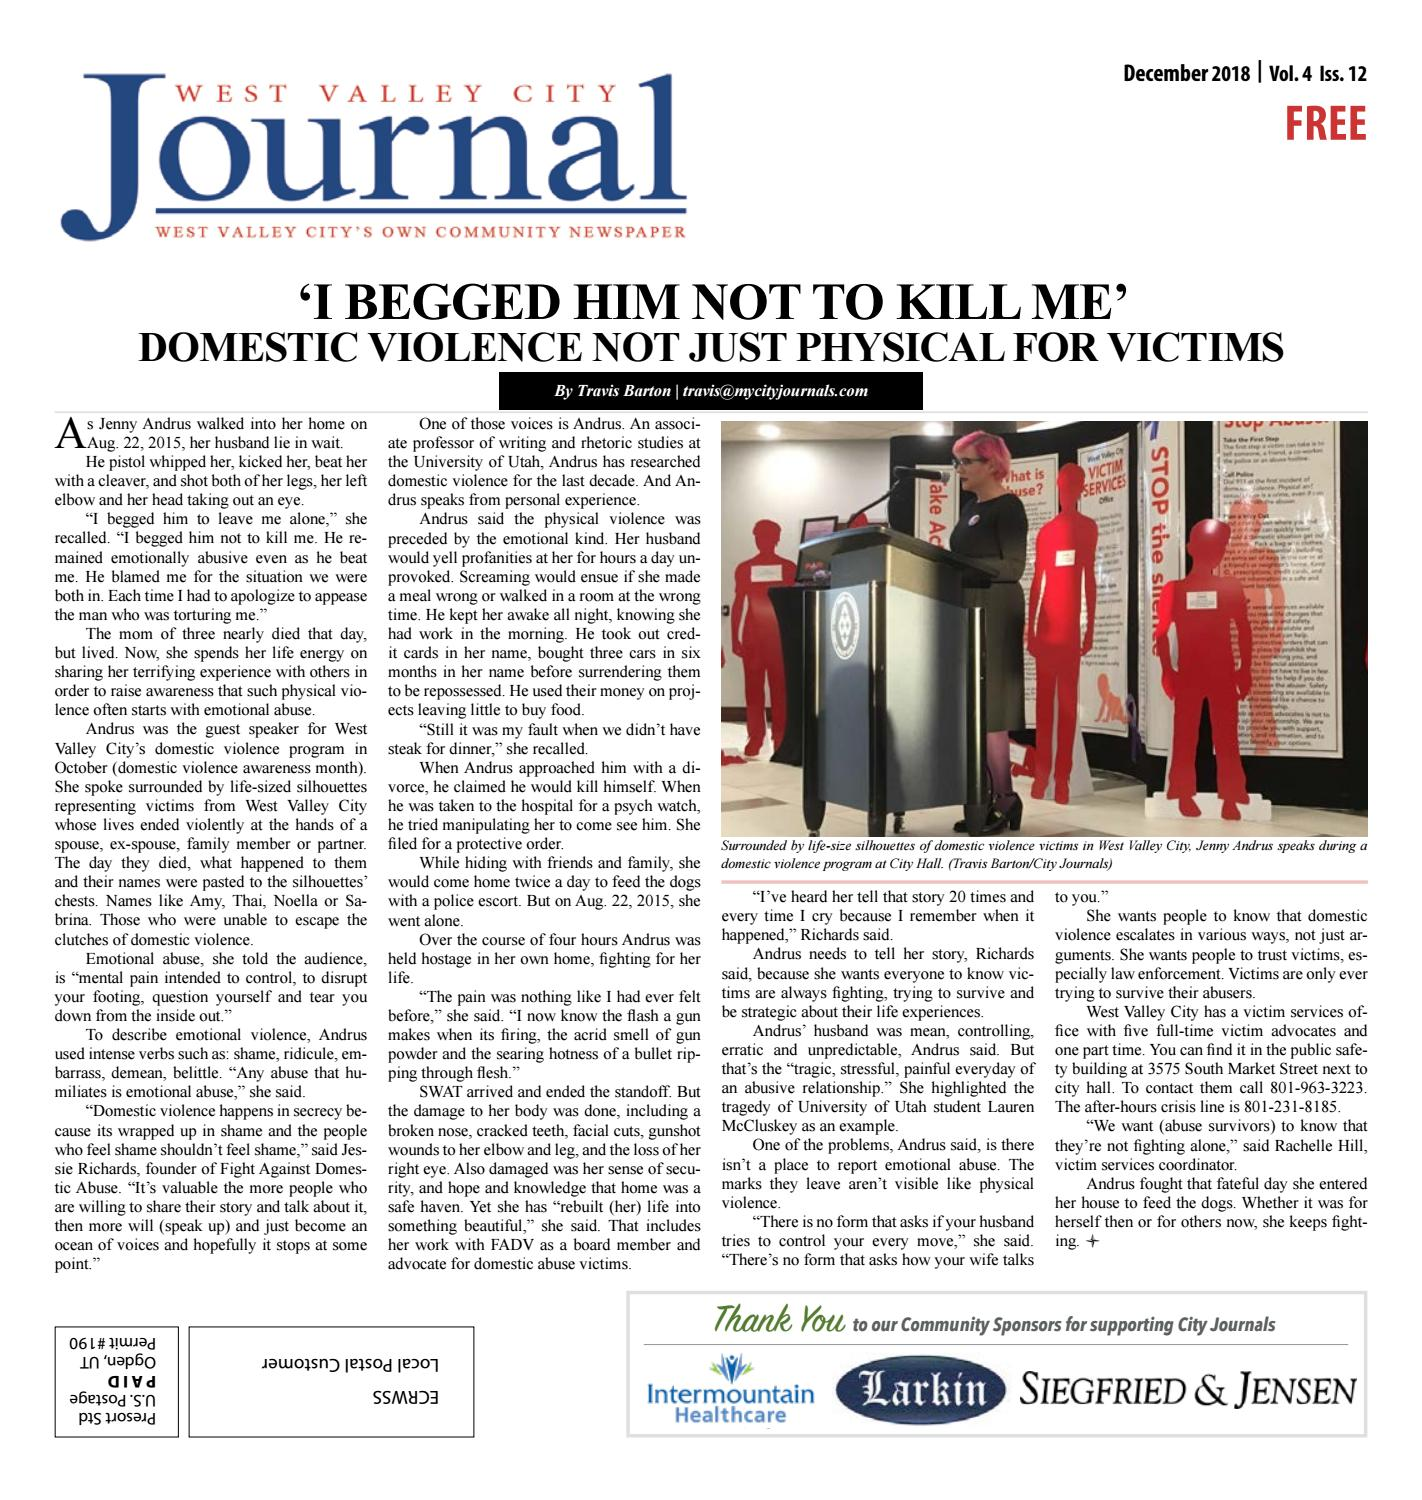 West Valley Journal December 2018 by The City Journals - issuu